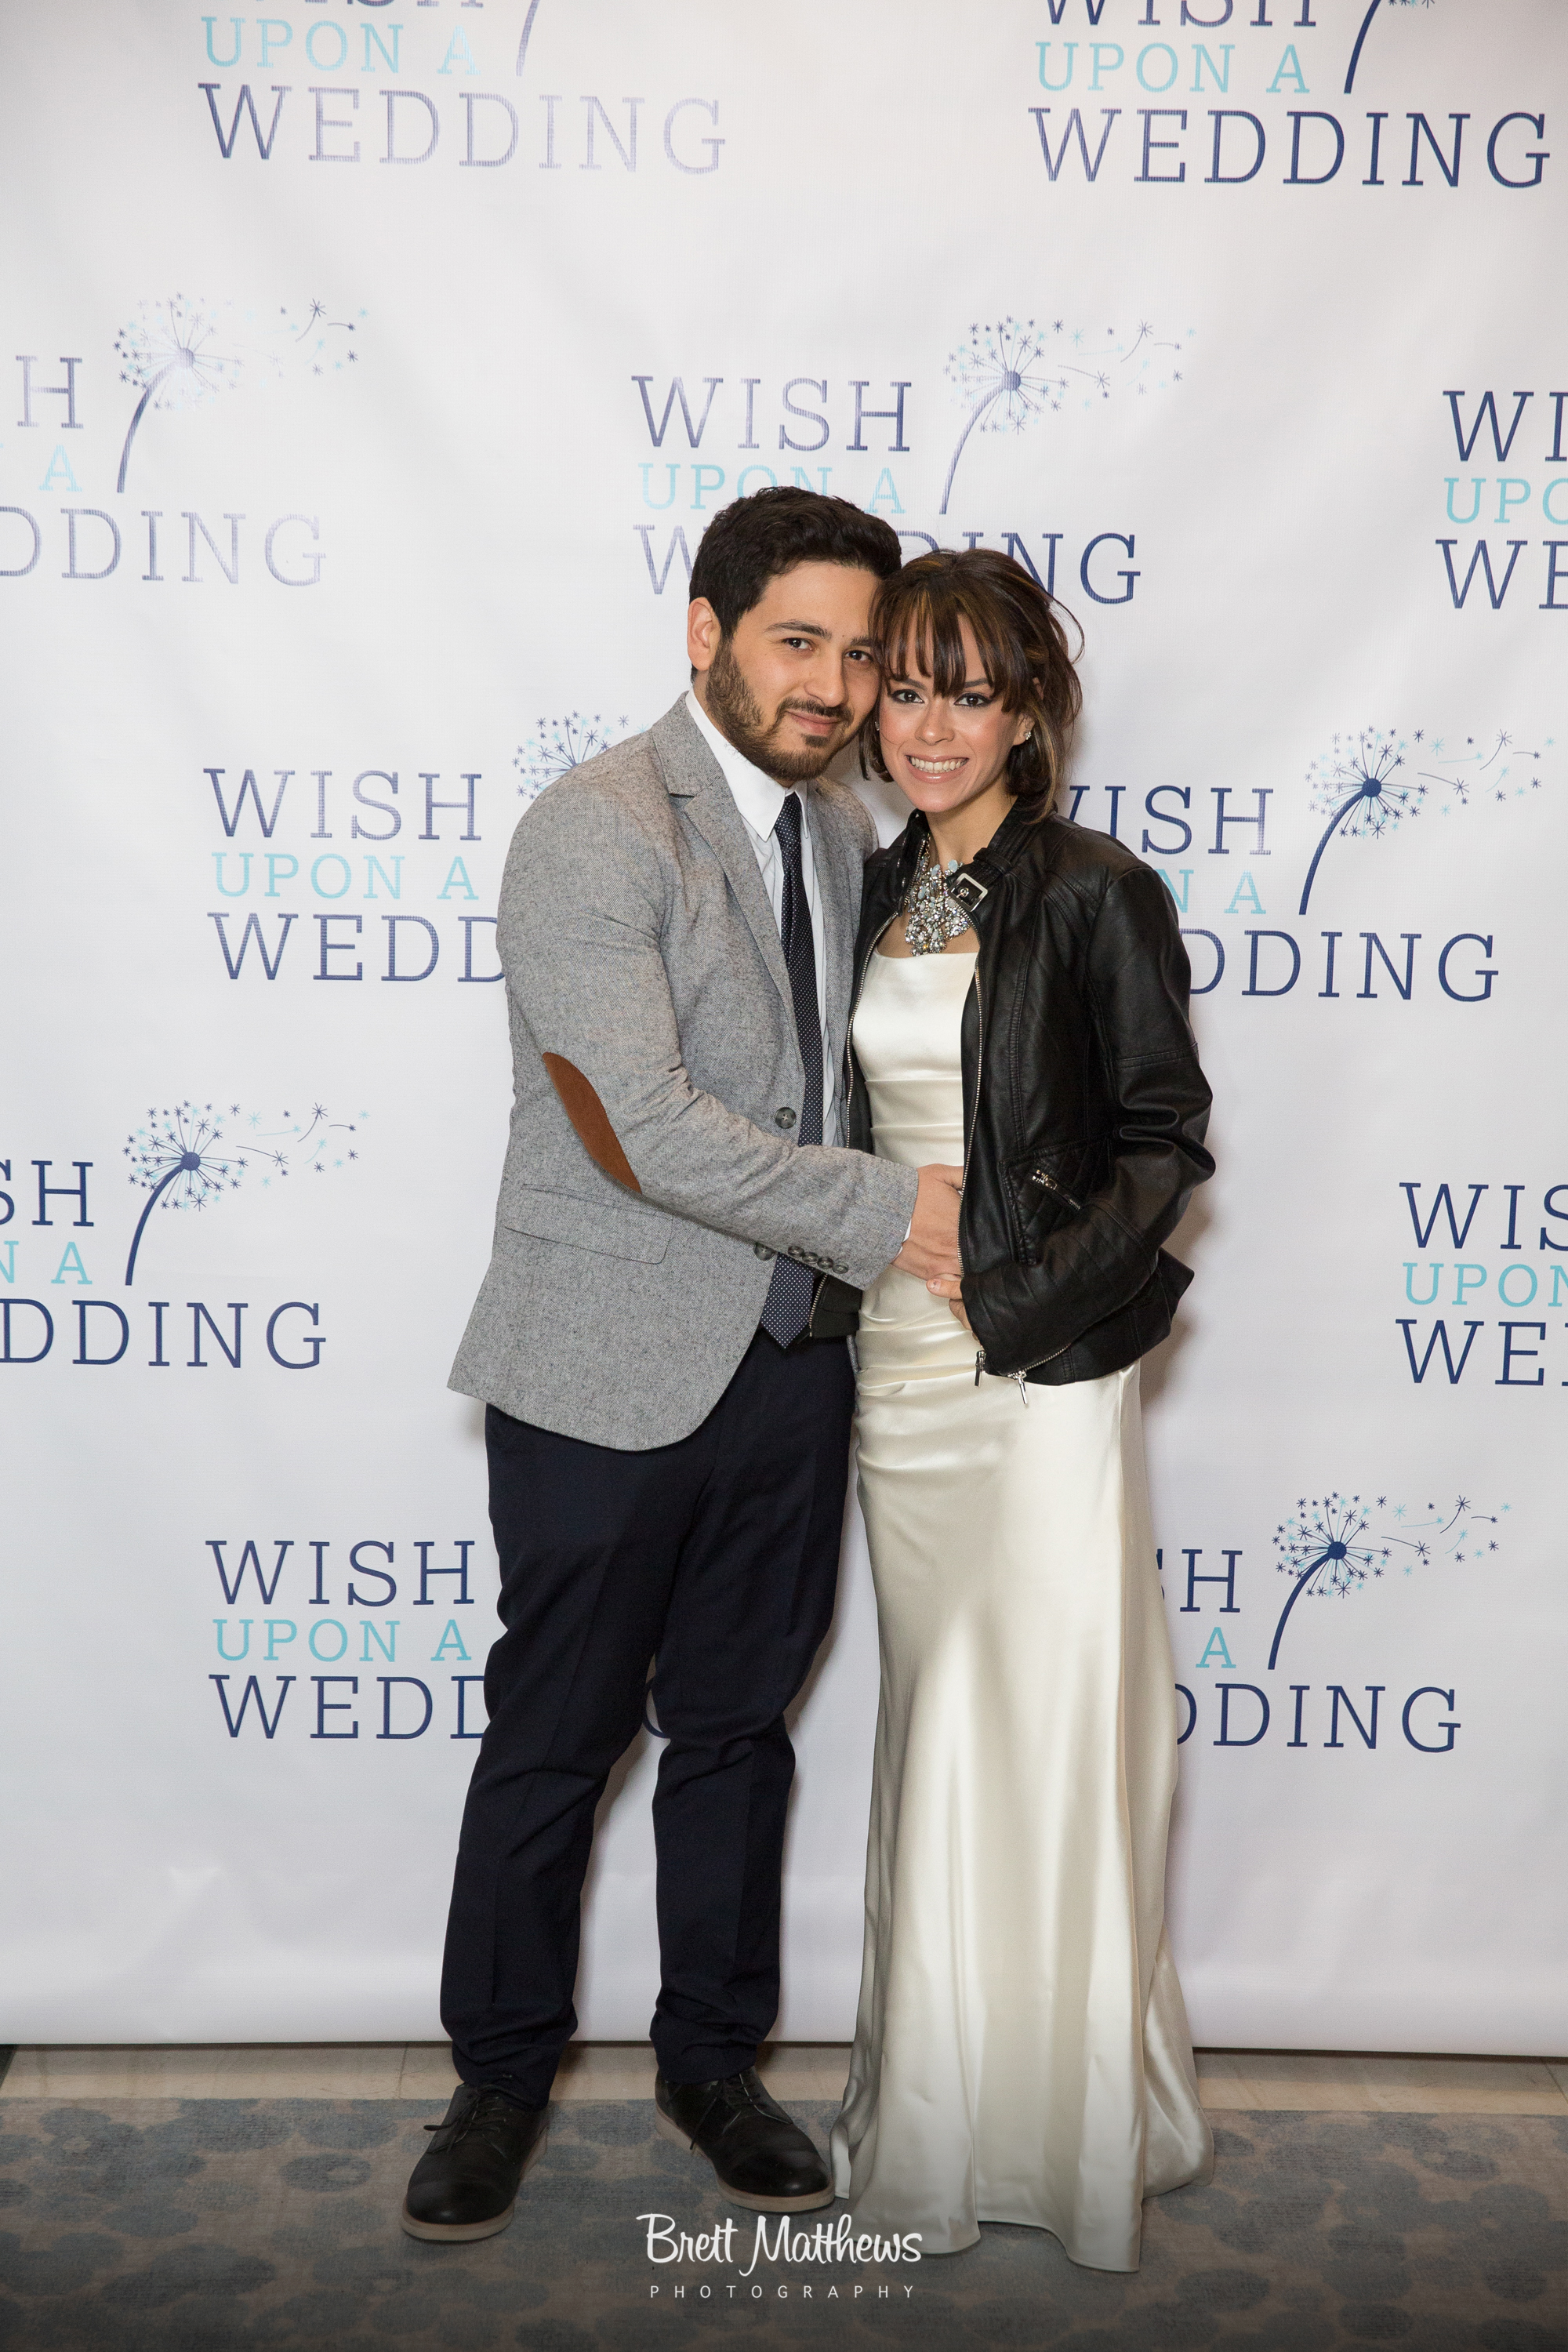 Wish-Upon-A-Wedding-Andrea-Freeman-Events-Gala-8.jpg